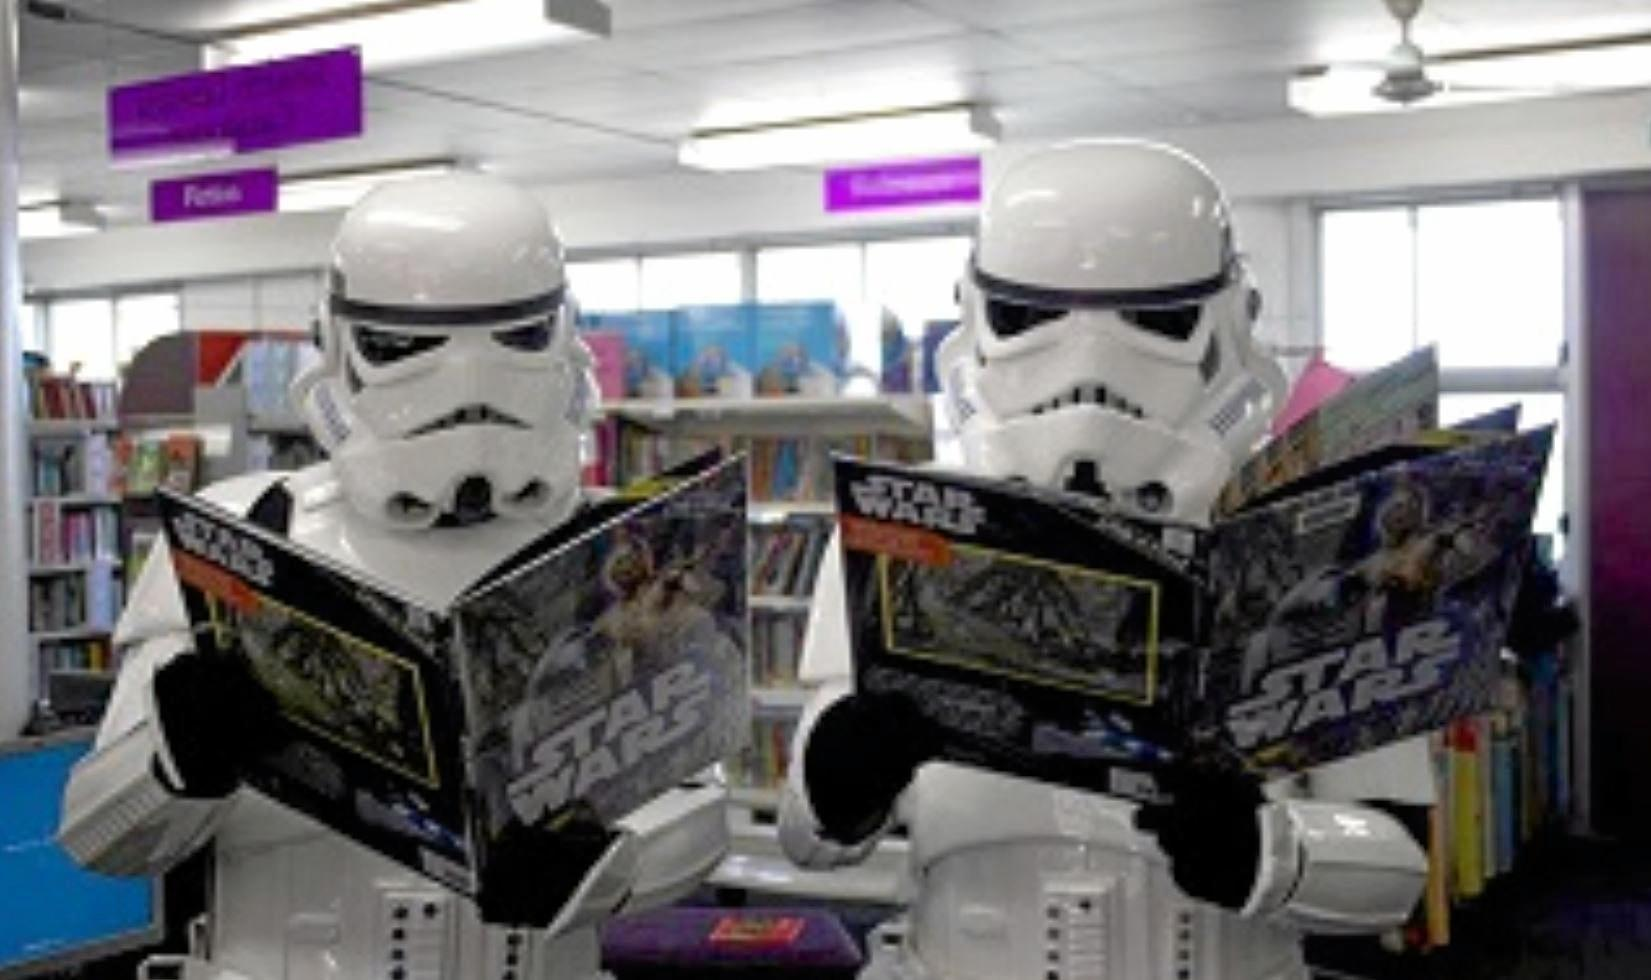 Star Wars Day will be held at the Toowoomba City Library.